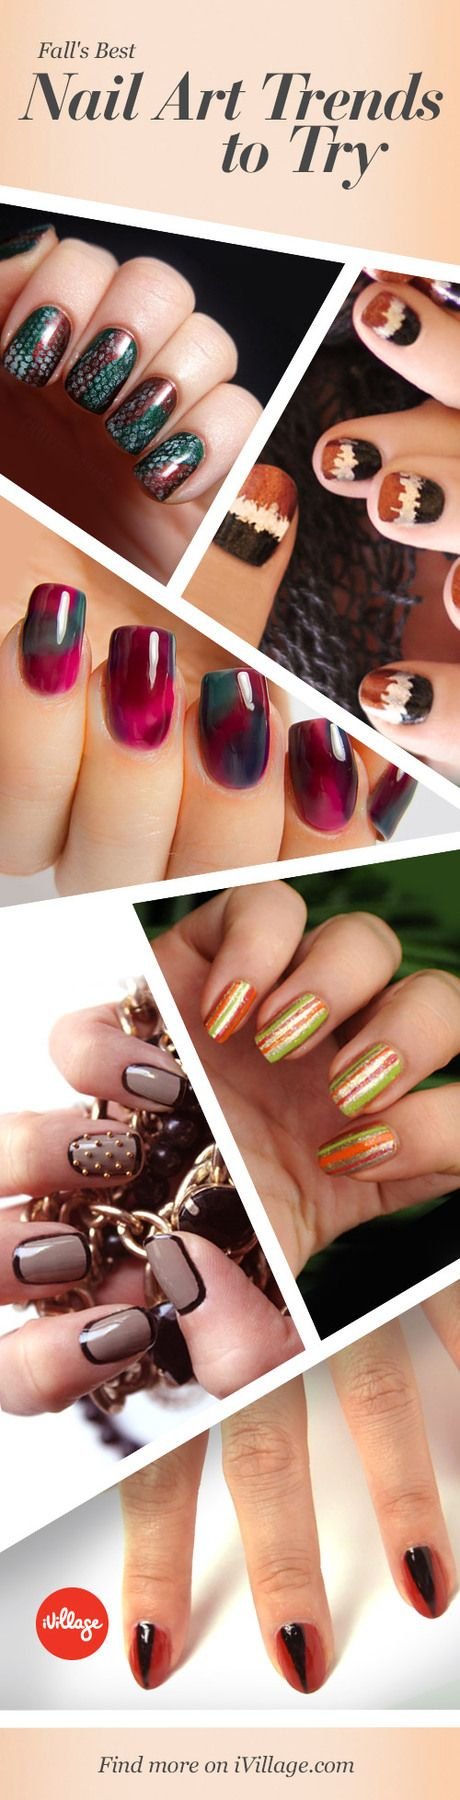 These fall nails are totally awesome to rock and totally easy to create. http://www.ivillage.com/nail-designs-fall-nail-art/5-a-545212?cid=pin|9-5-13|69